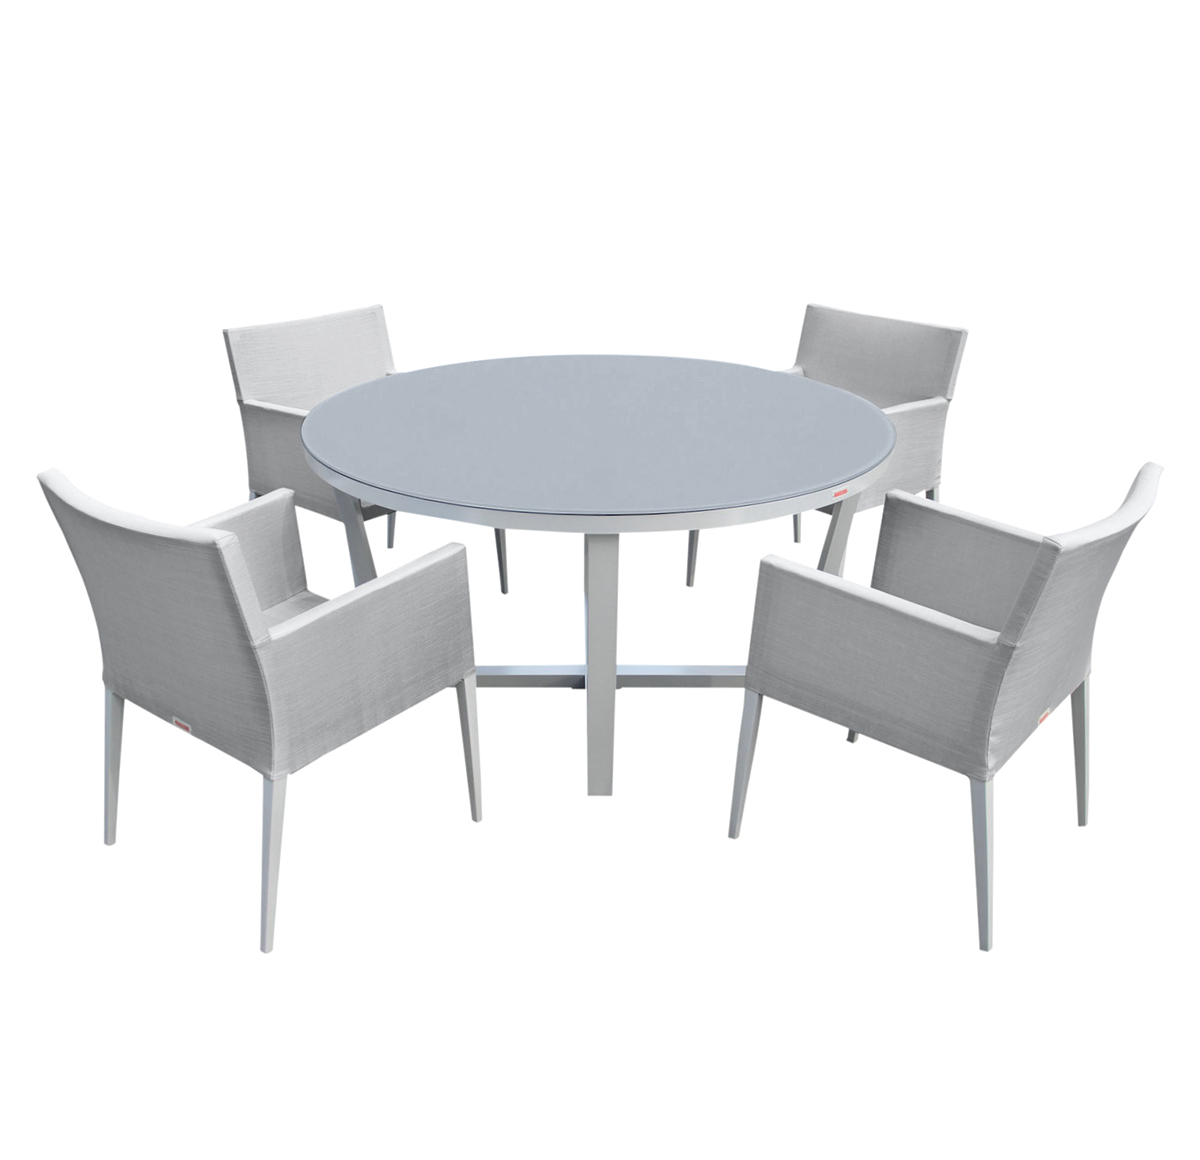 Parisia New Aluminum Gray Frosted Glass 5-Pc Round Dining Table Set